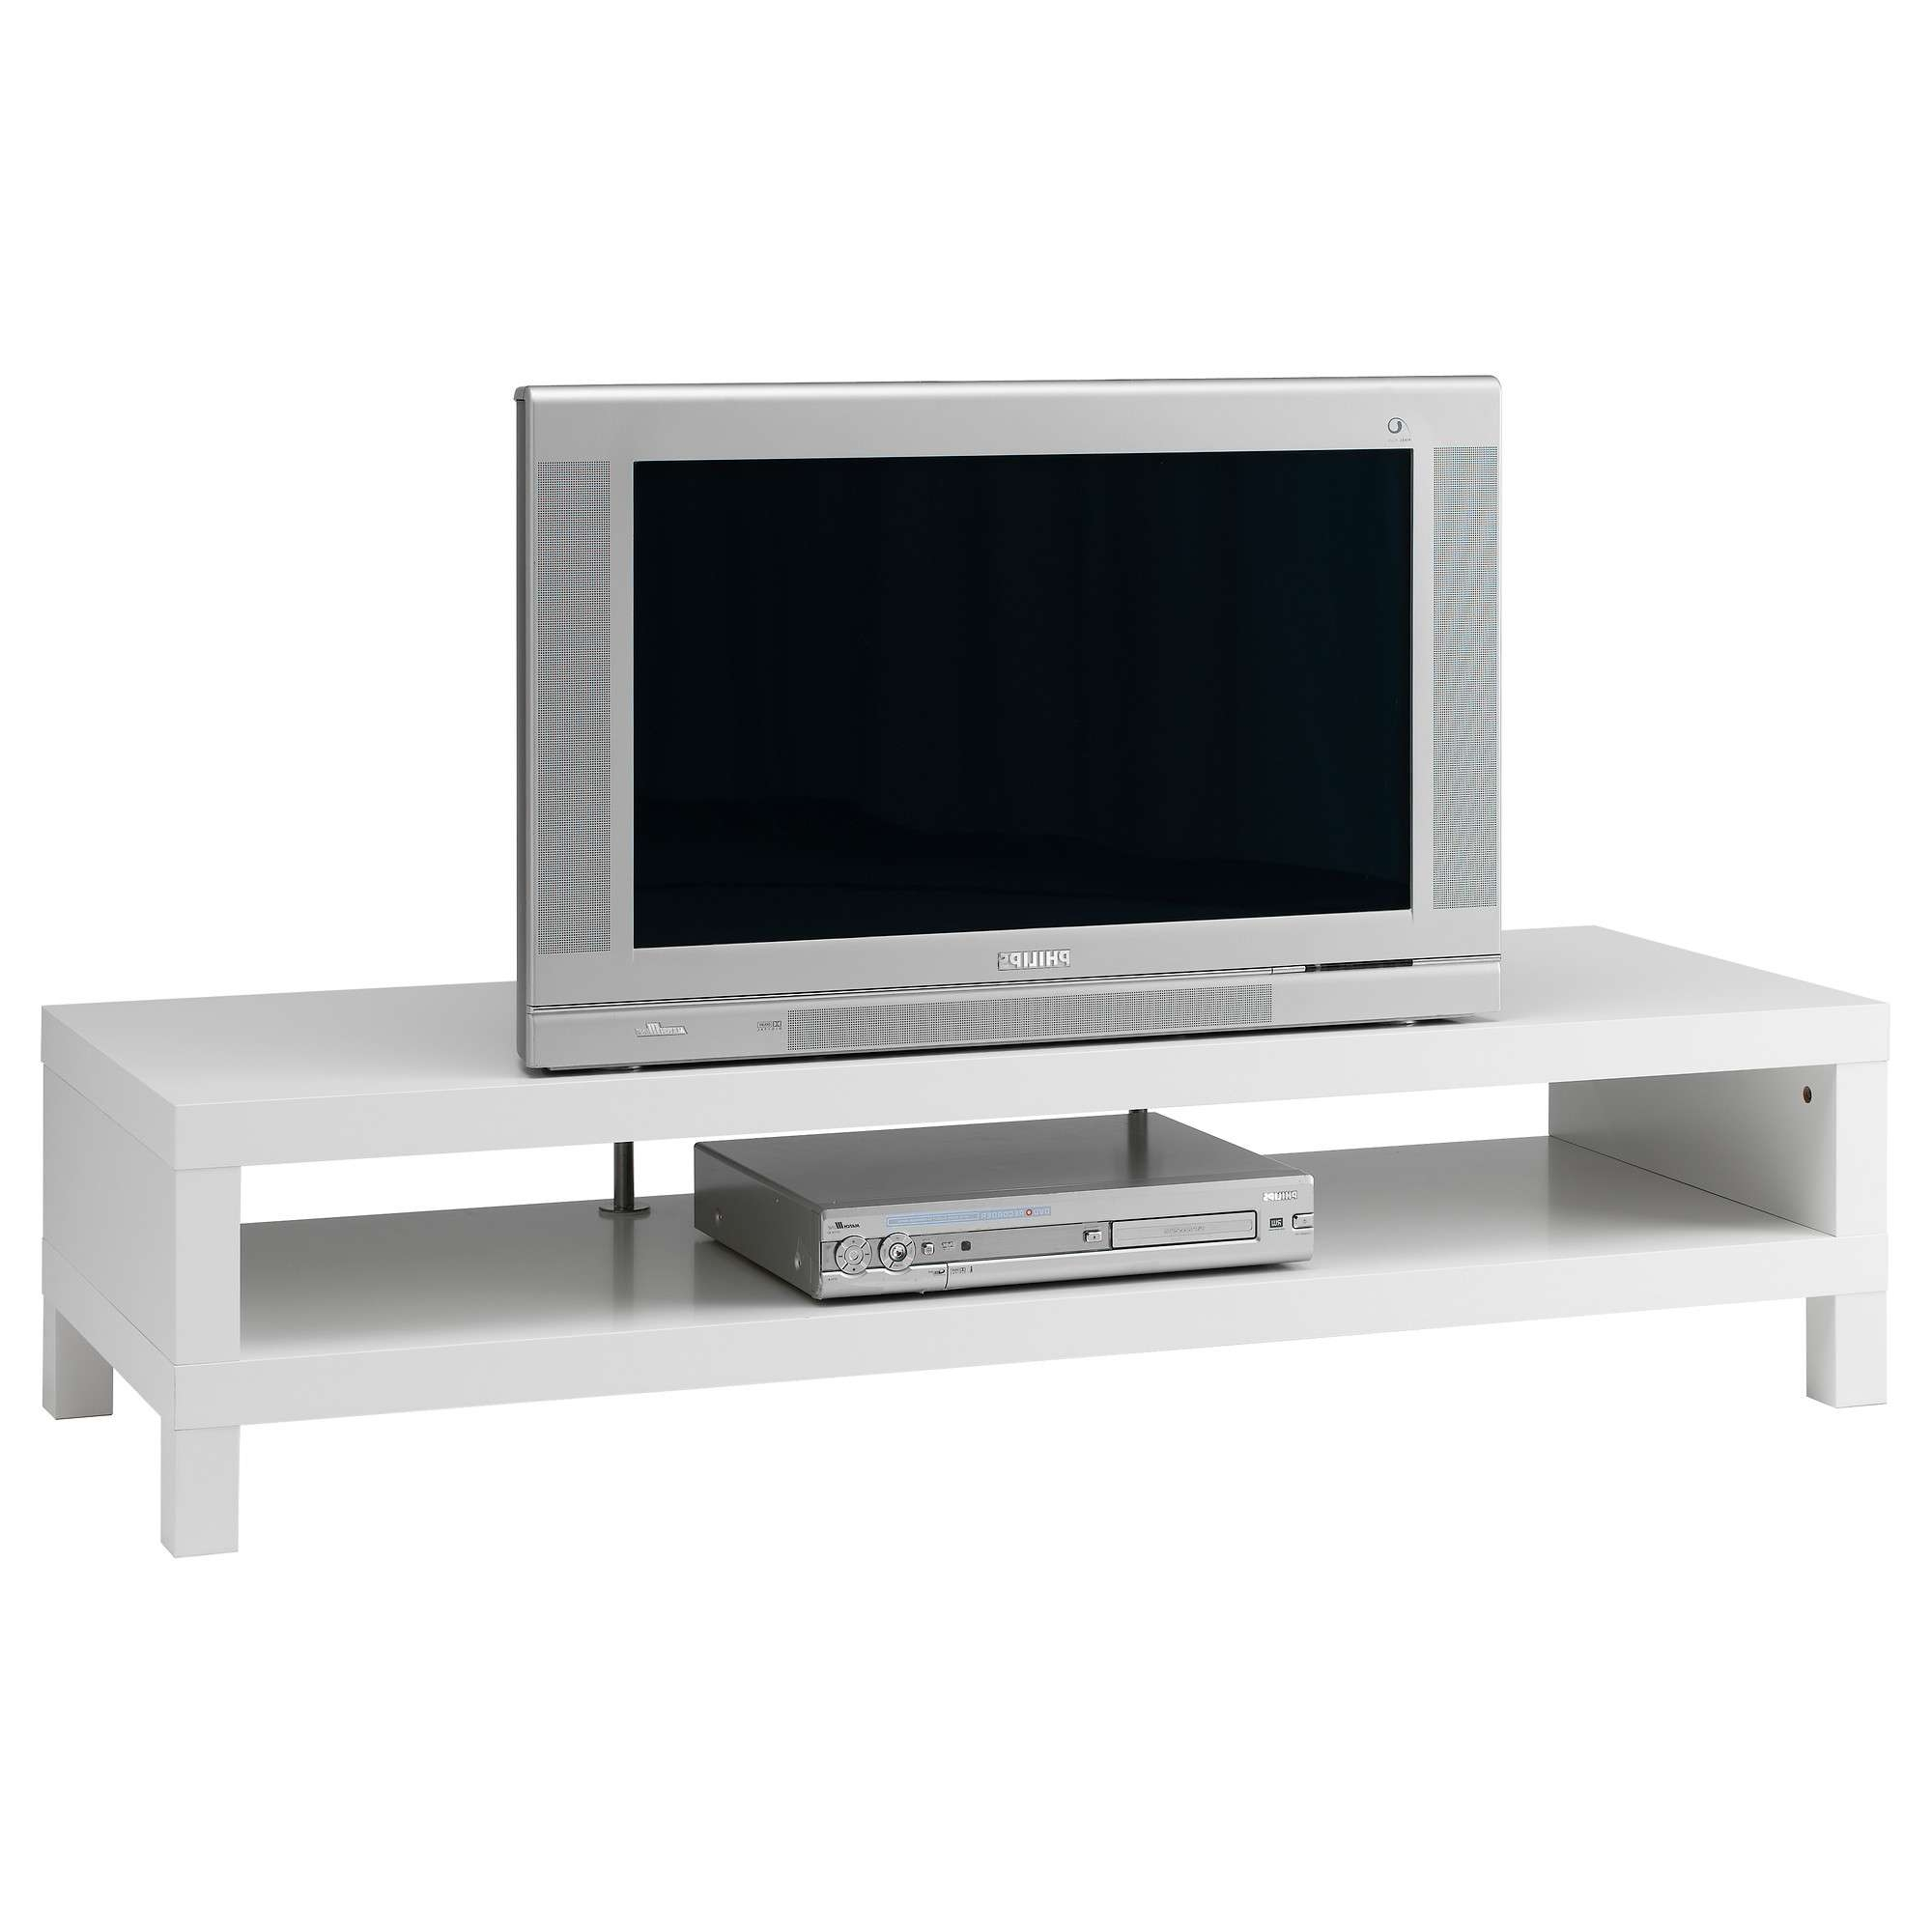 Tv Stands & Tv Units | Ikea Regarding Tv Stands At Ikea (View 7 of 15)